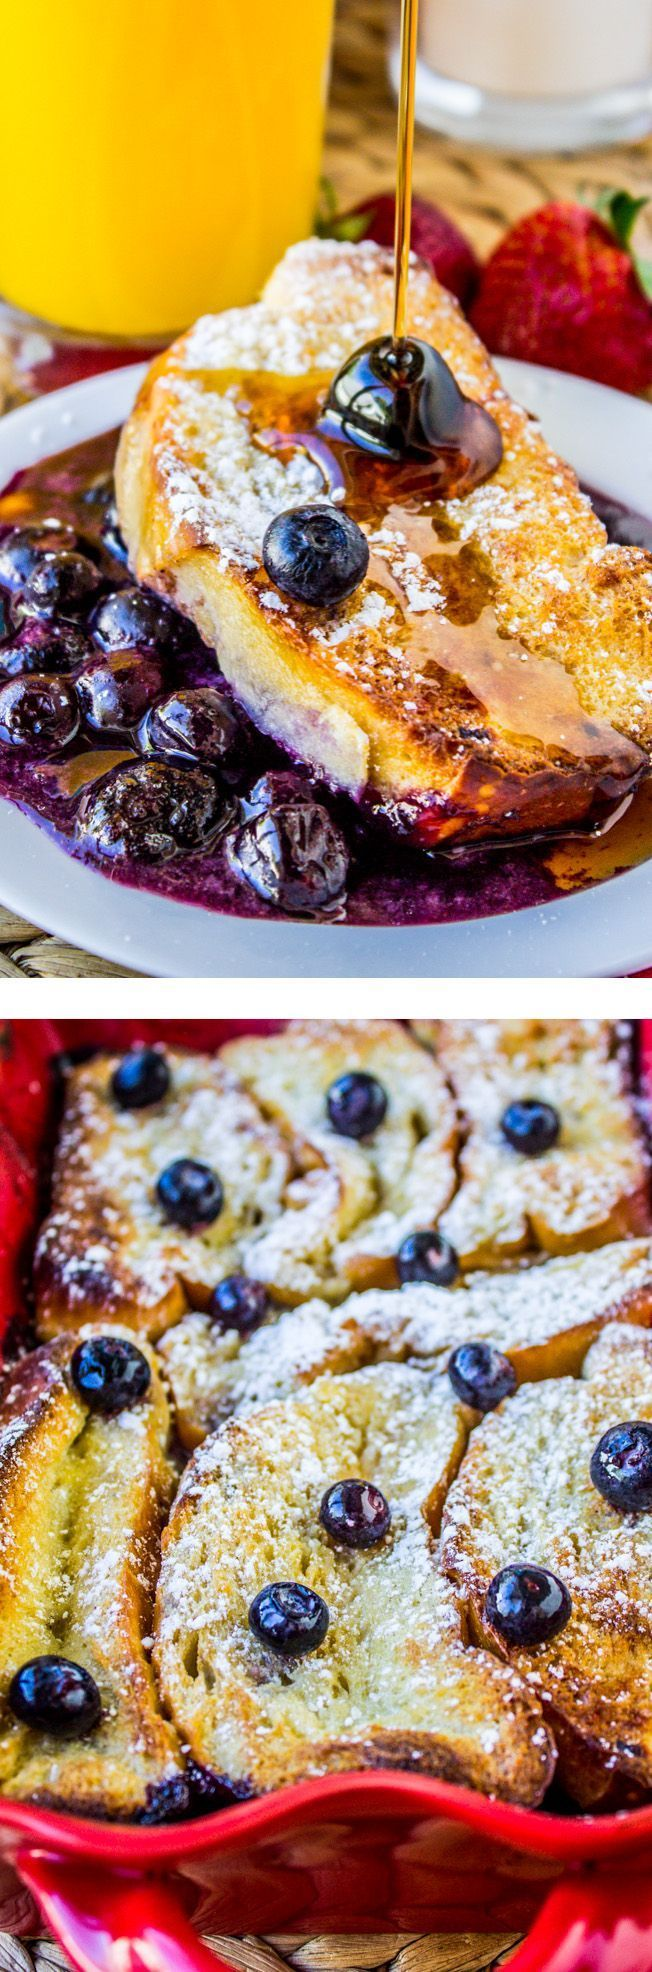 Overnight Blueberry French Toast Casserole from The Food Charlatan // This is basically blueberry pie topped with French Toast. Bring it ON.